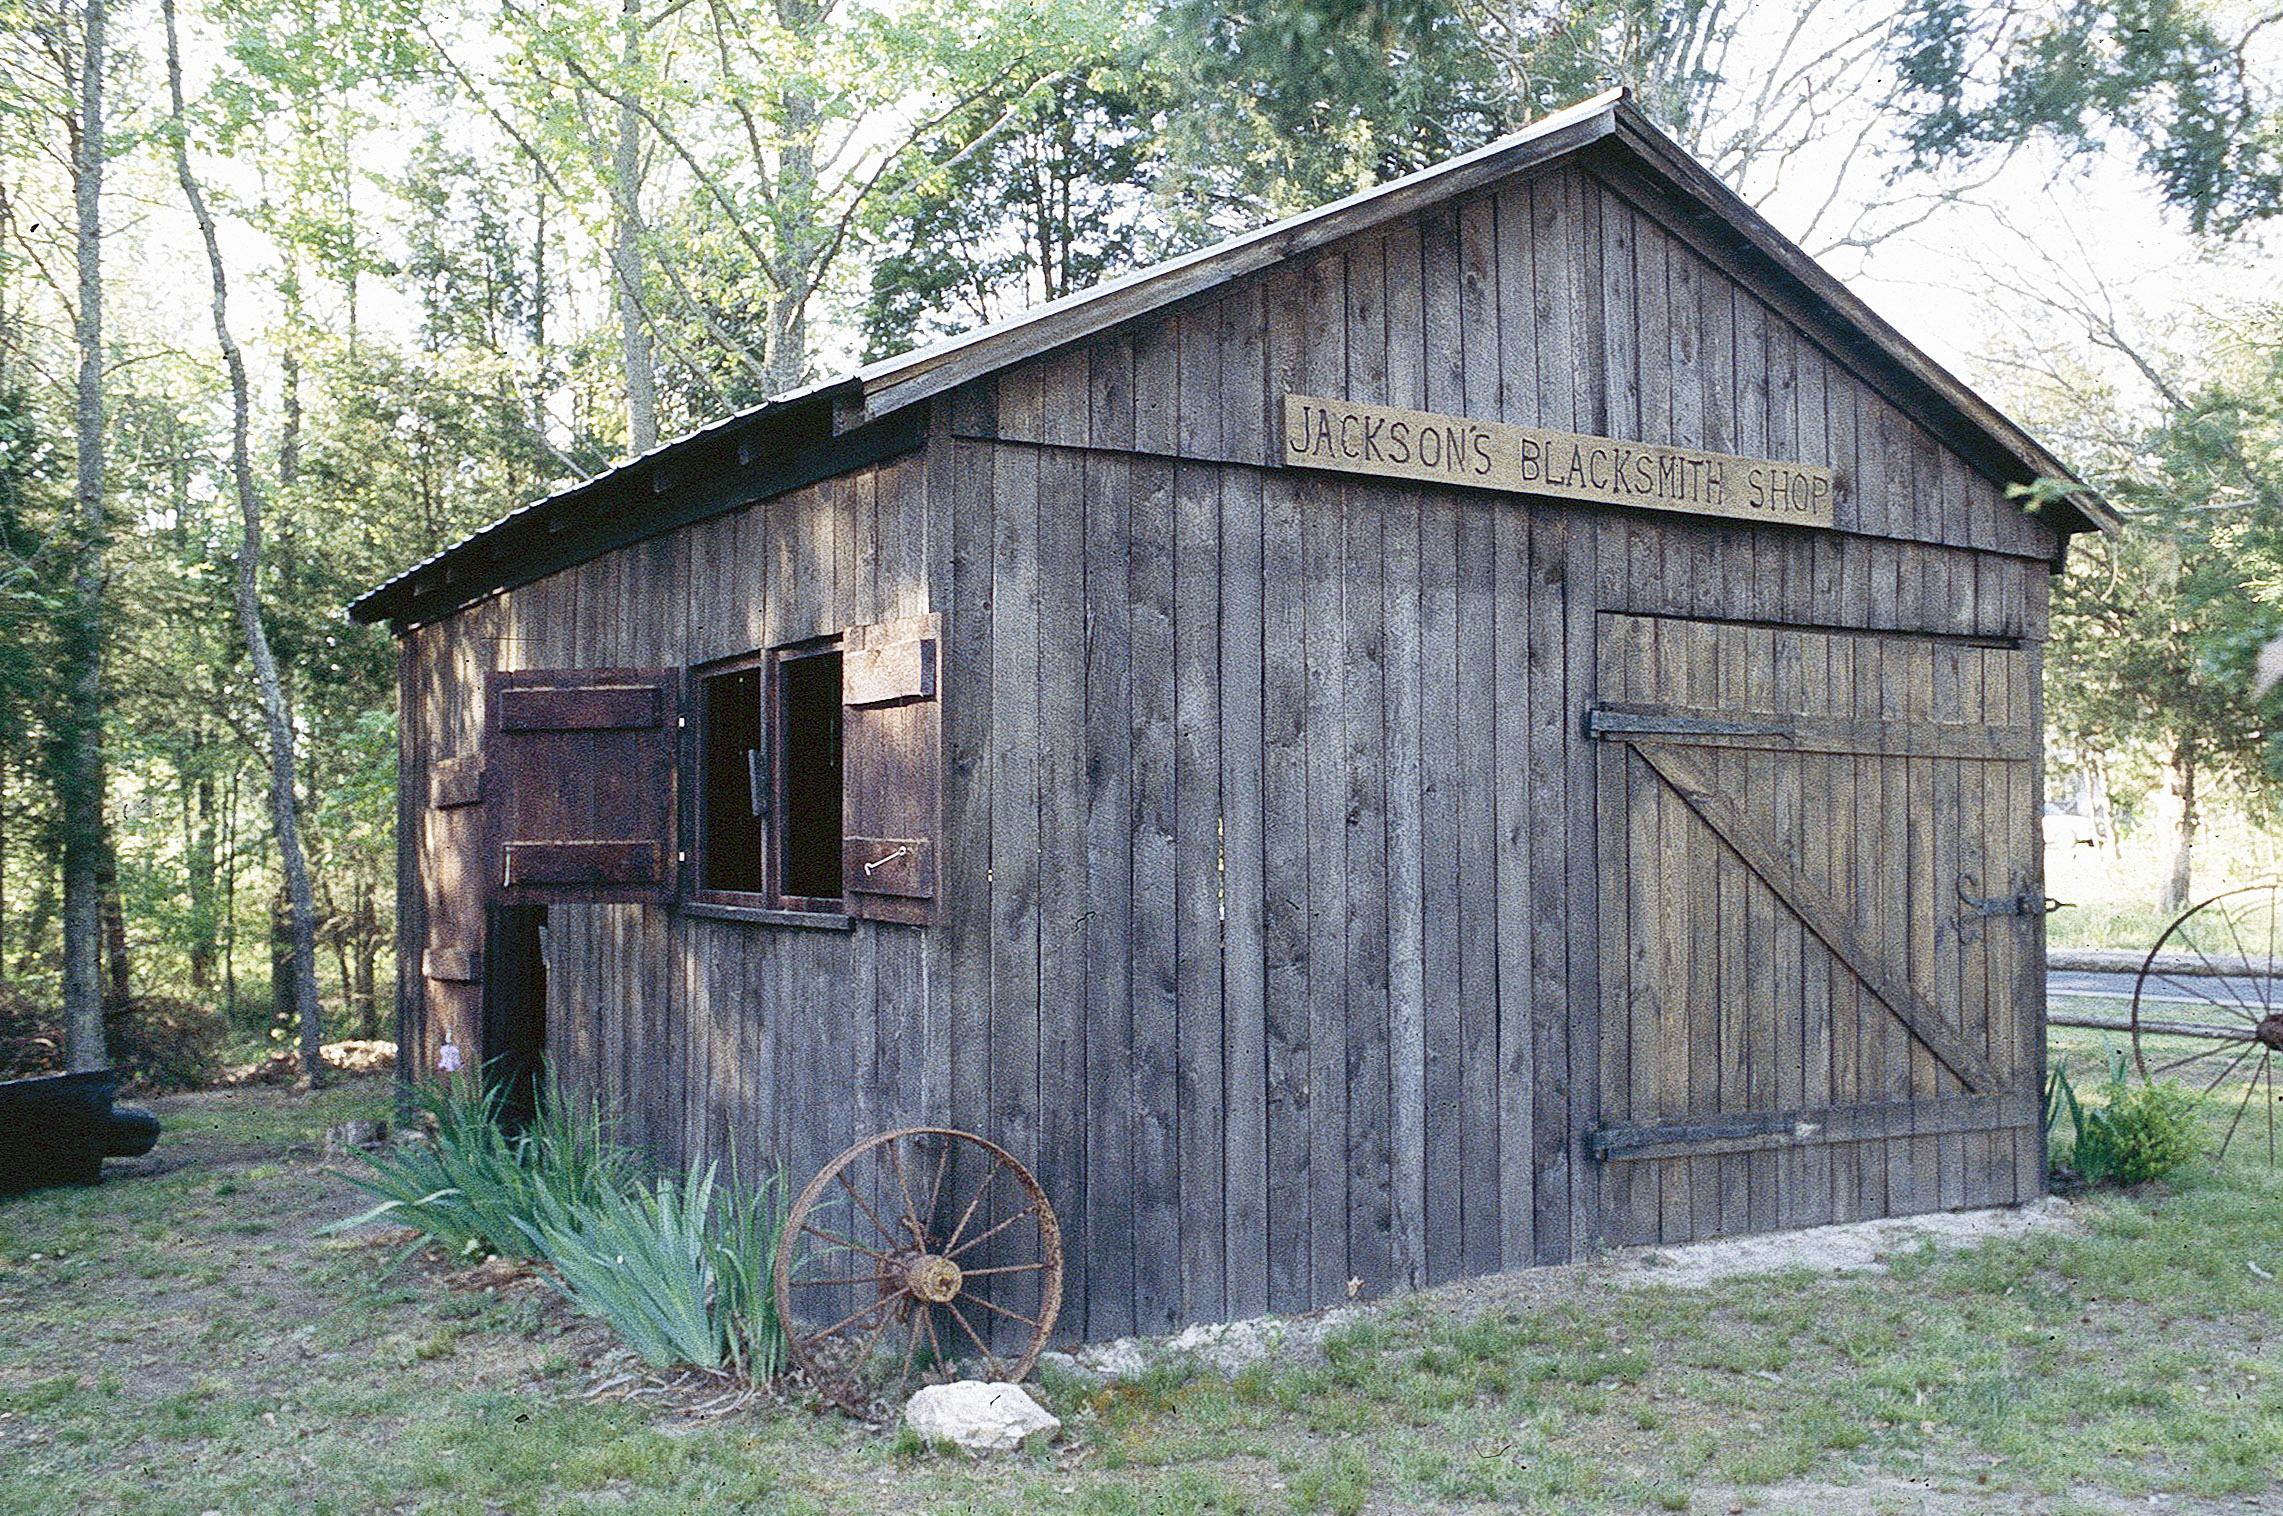 Jackson Blacksmith Shop